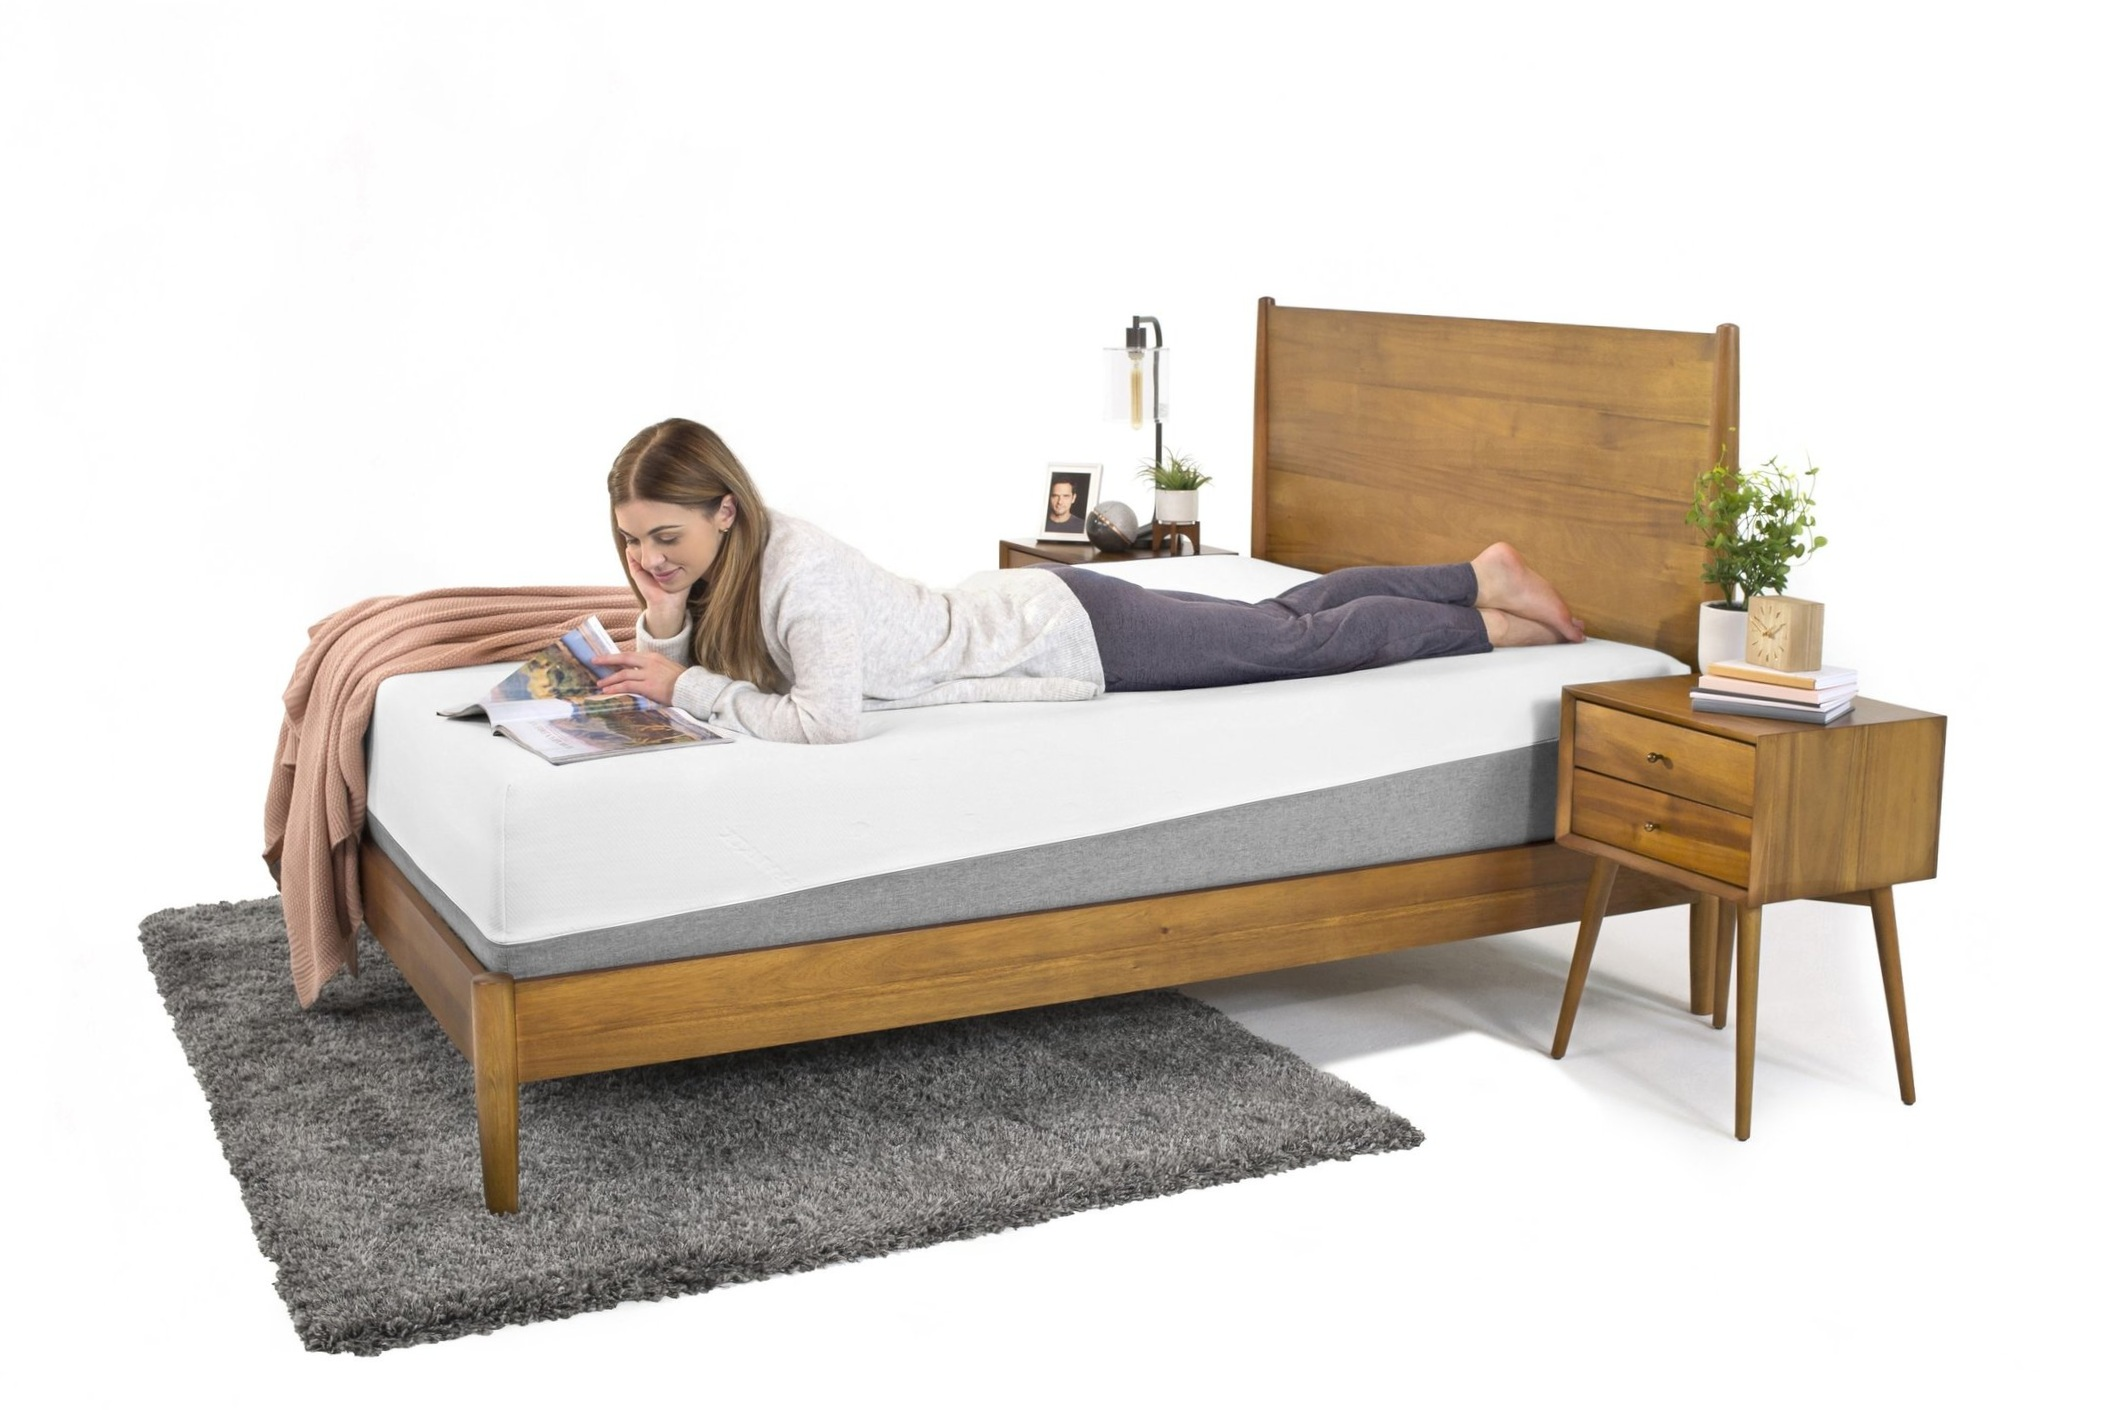 The Frankly Memory Foam Mattress is recommended by Marc Anderson, A bedding industry CEO with 25 years of mattress engineering experience.